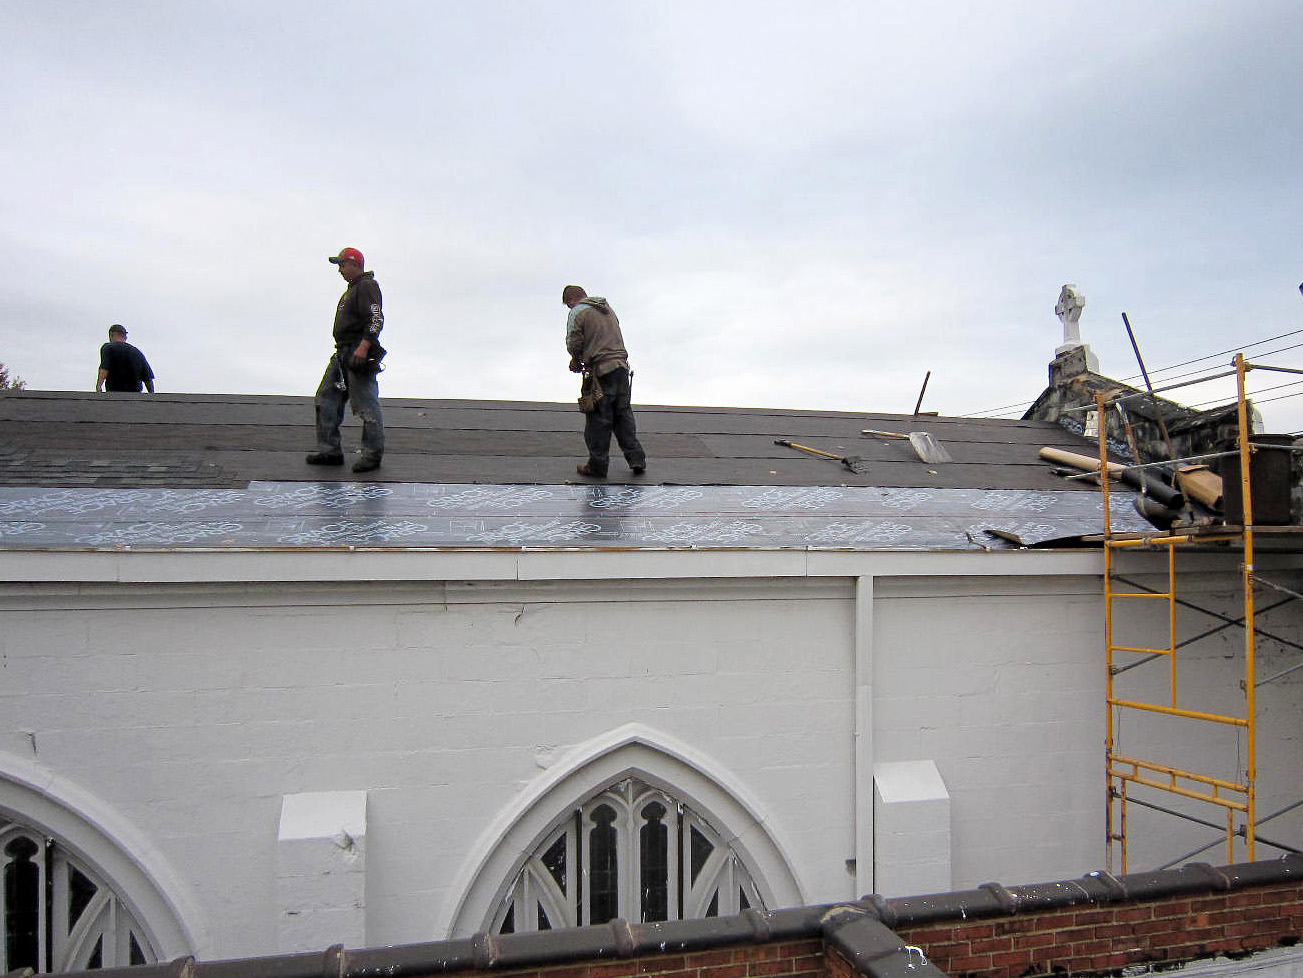 The Reader Roofing crew installing the new roofing system on a church in Cleveland. & Cleveland Roofers Repair Church u2013 East Side | Reader Roofing memphite.com